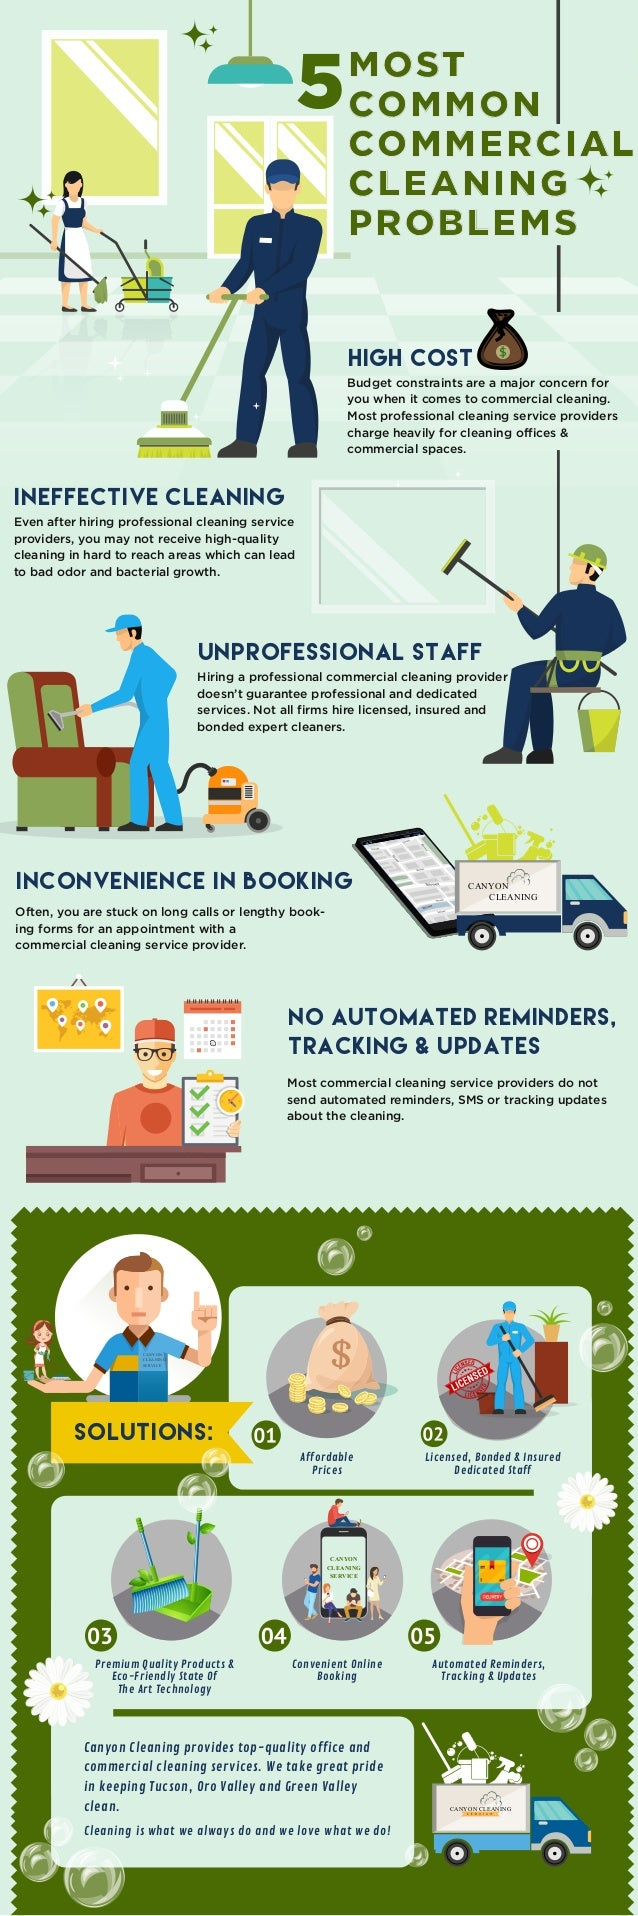 canyon-cleaning-infographic-1-638.jpg?cb